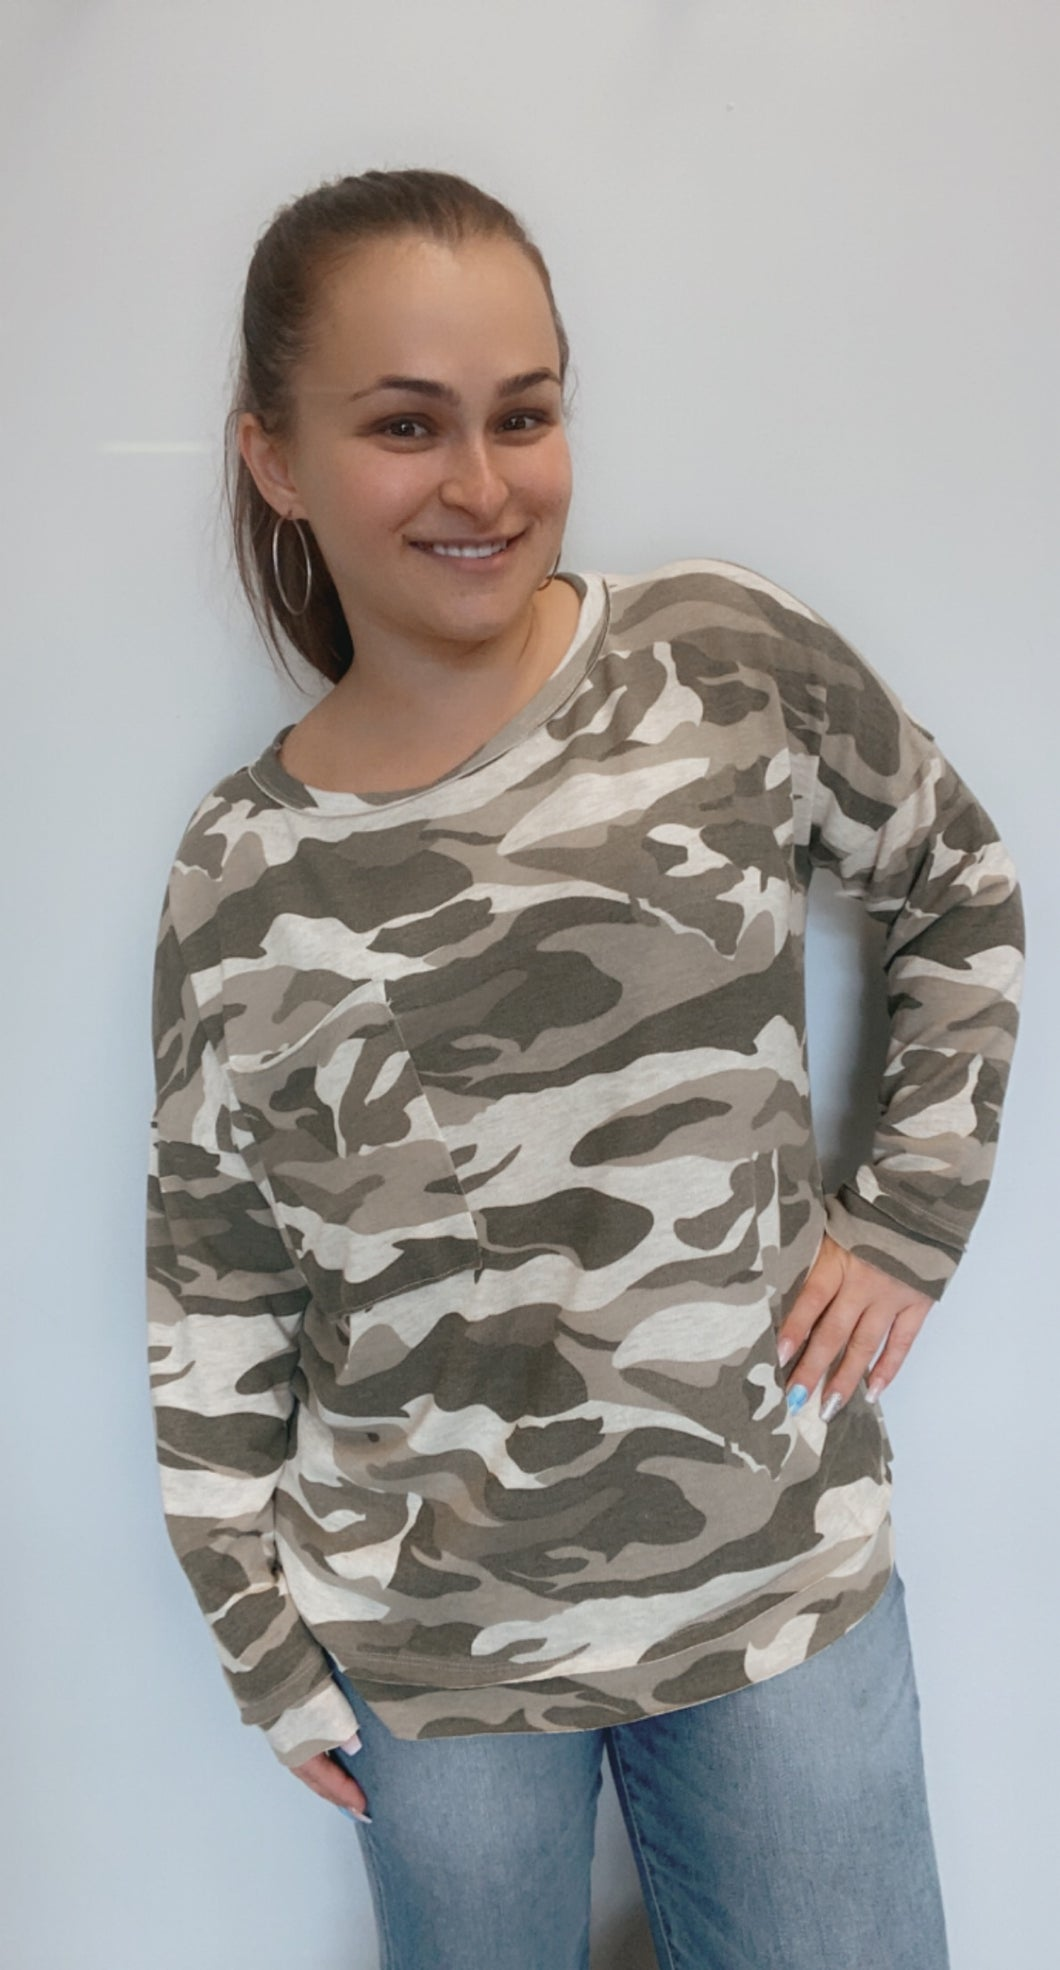 Camo pocket shirt